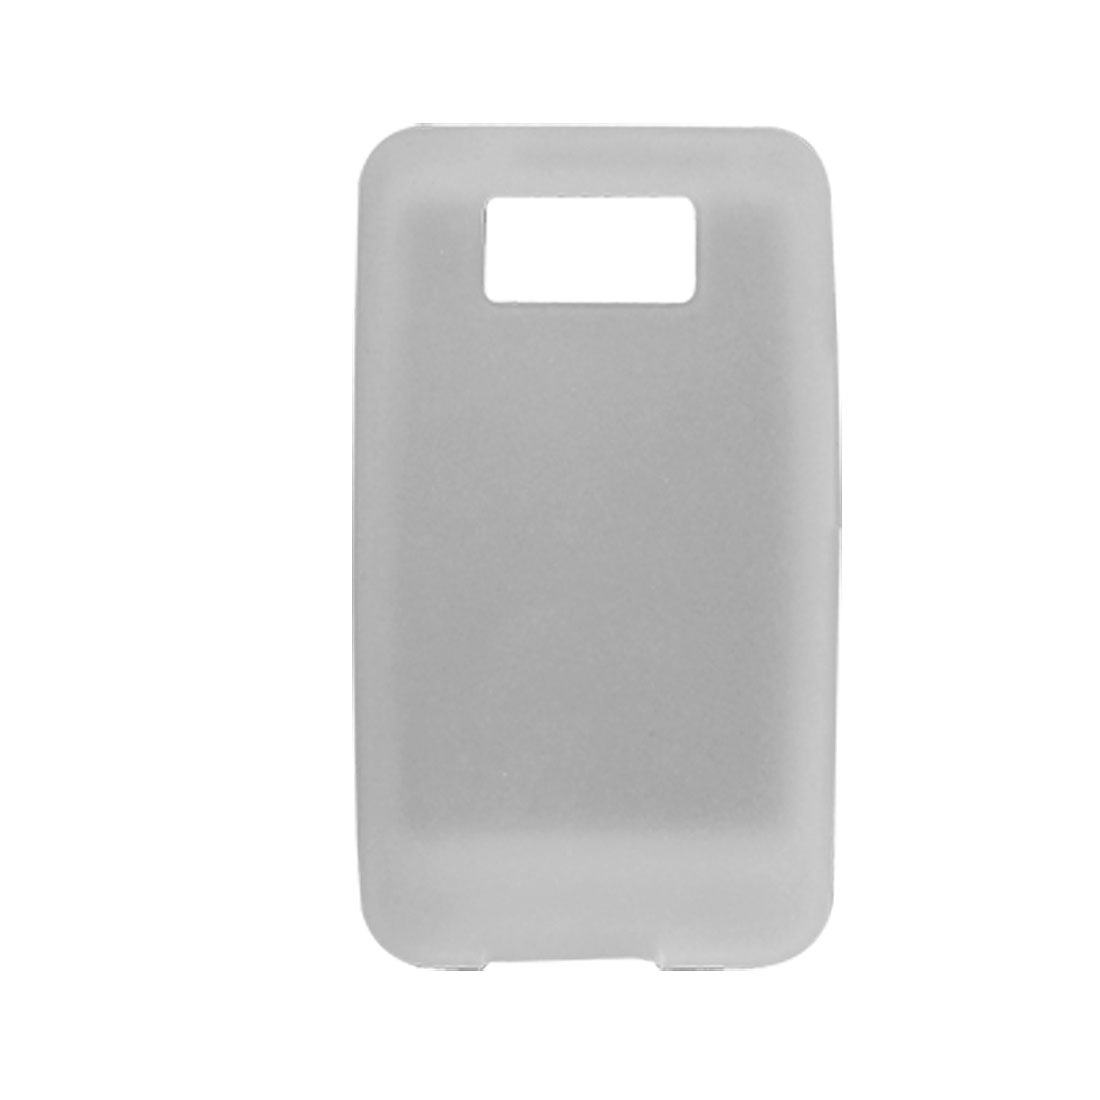 Soft Silicone Cover Skin for HTC Touch HD2 Clear White